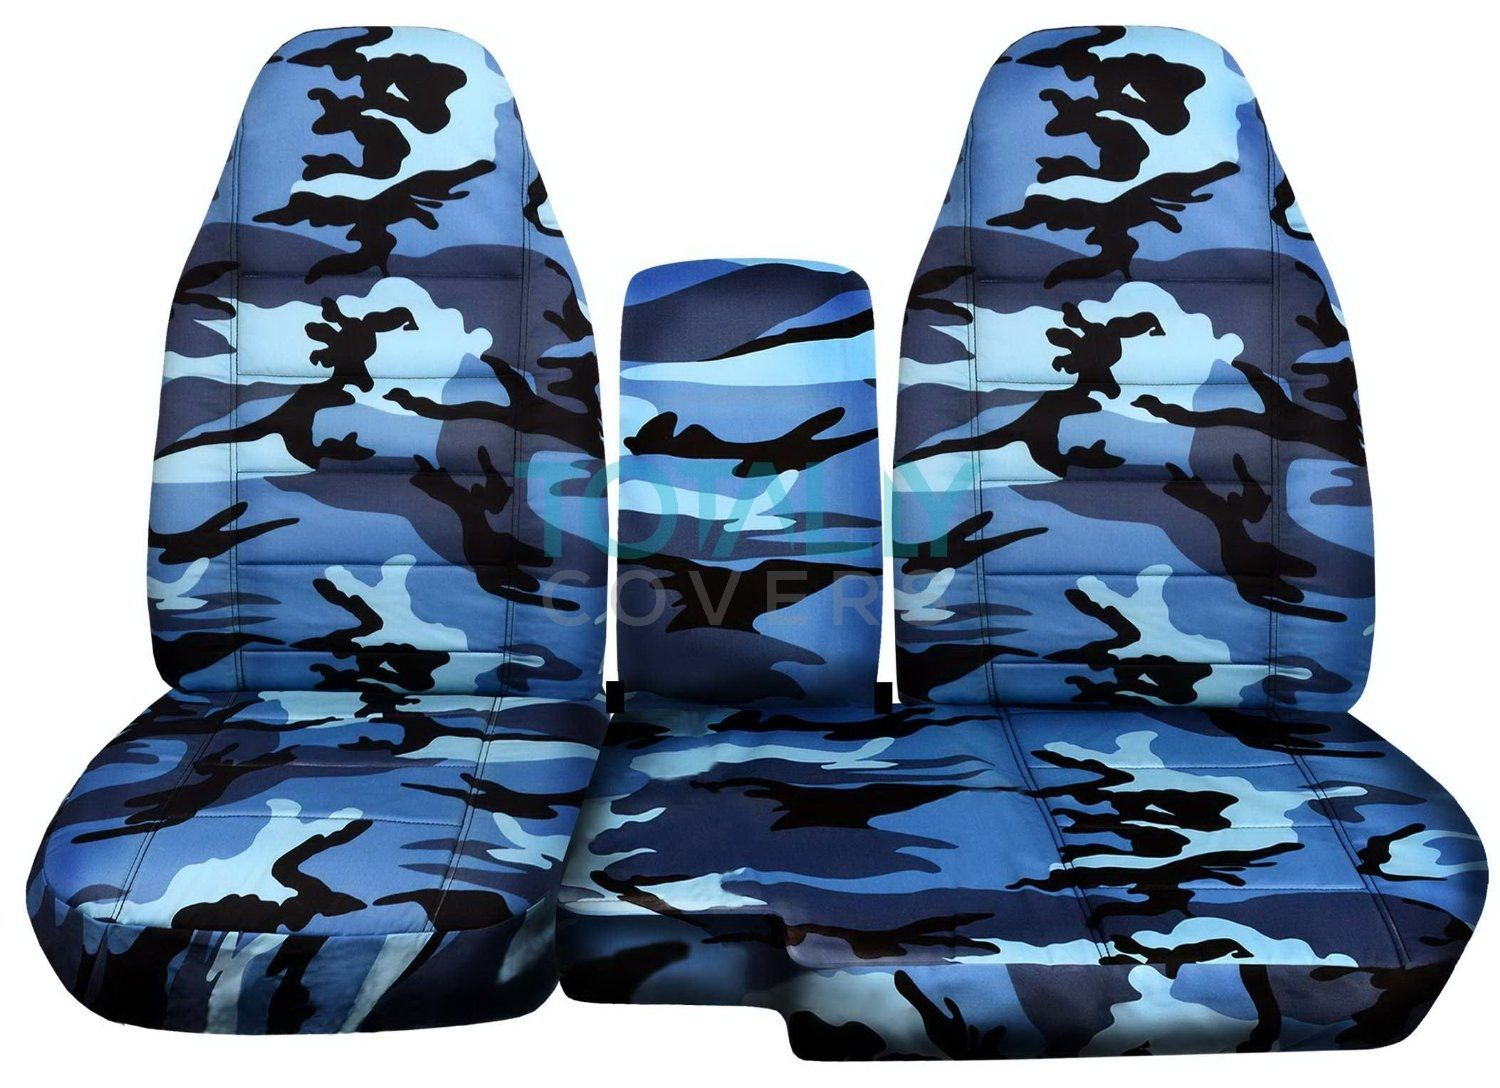 New Ford Ranger Seat Covers Camo Ford Ranger Camo Seat Covers Truck Seat Covers